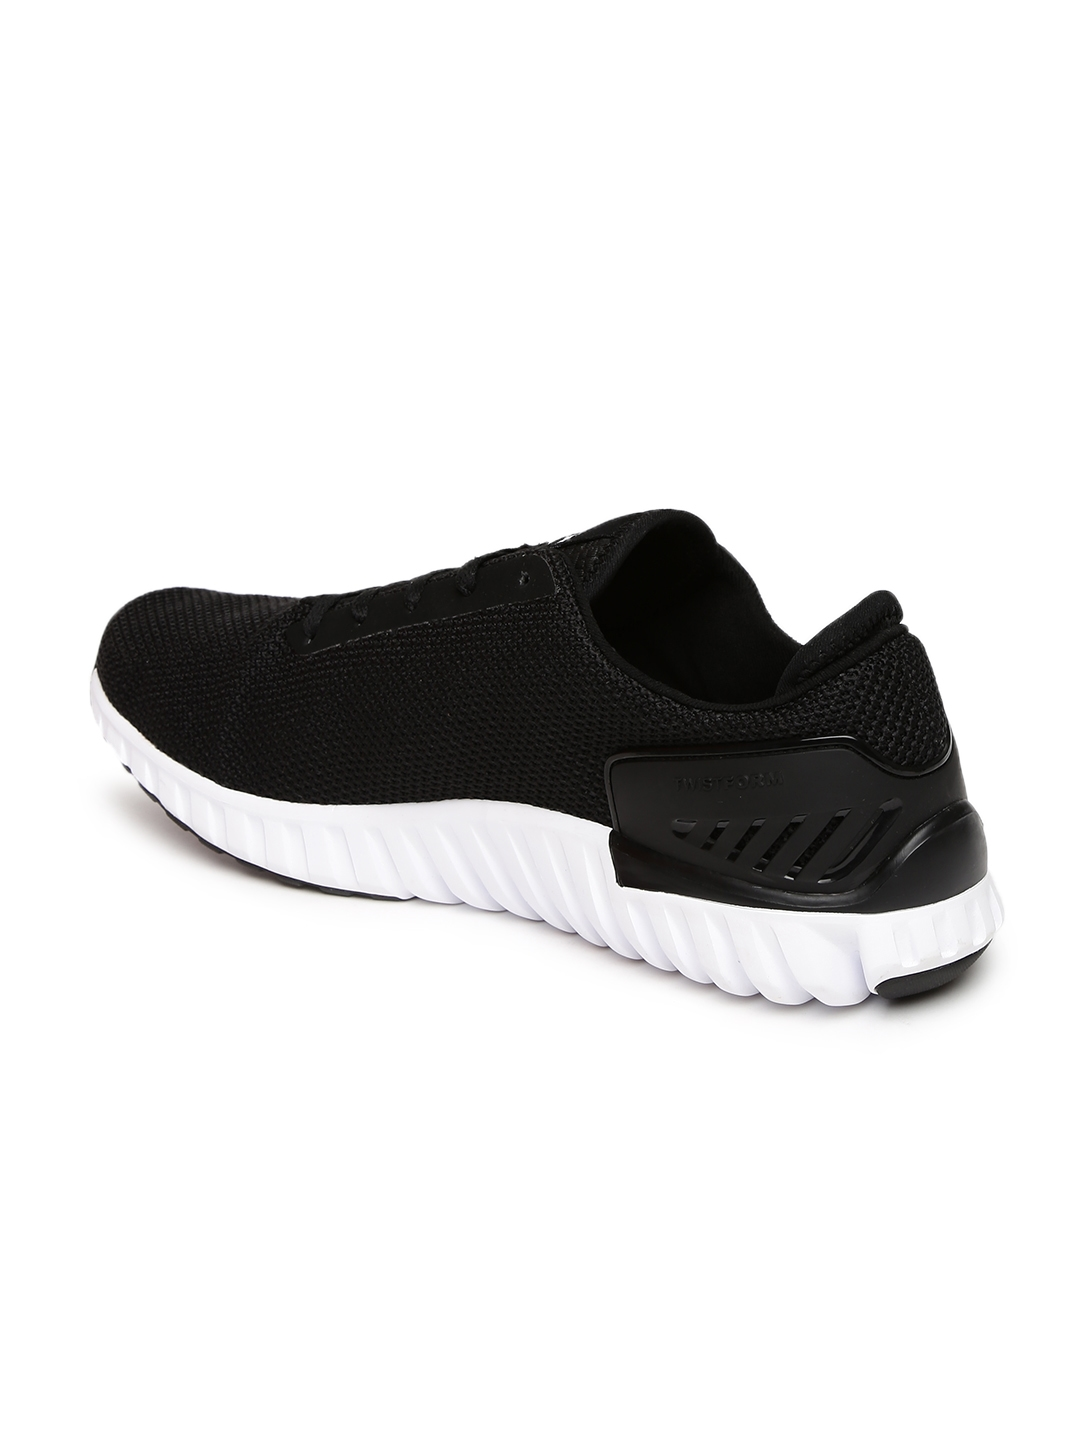 d58b421dcc0a23 Buy Reebok Men Black TWISTFORM 3.0 MU Running Shoes - Sports Shoes ...